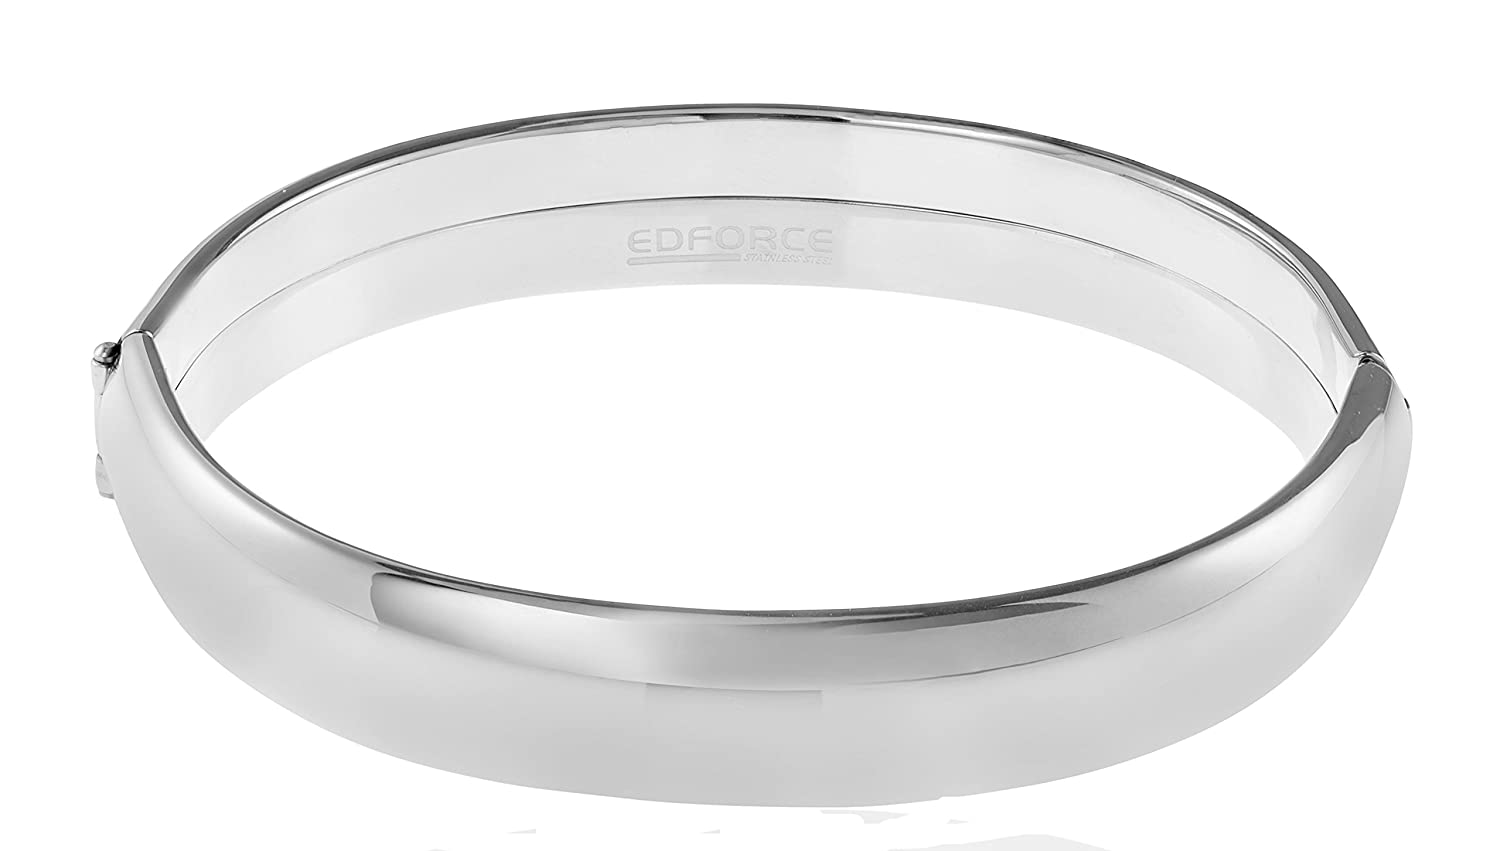 62d22874a05 Edforce Stainless Steel Women's Stackable Bangle Bracelet Wide Round Oval  Hinged Slip-On, 68mm x 60mm (2.6in x 2.3in)